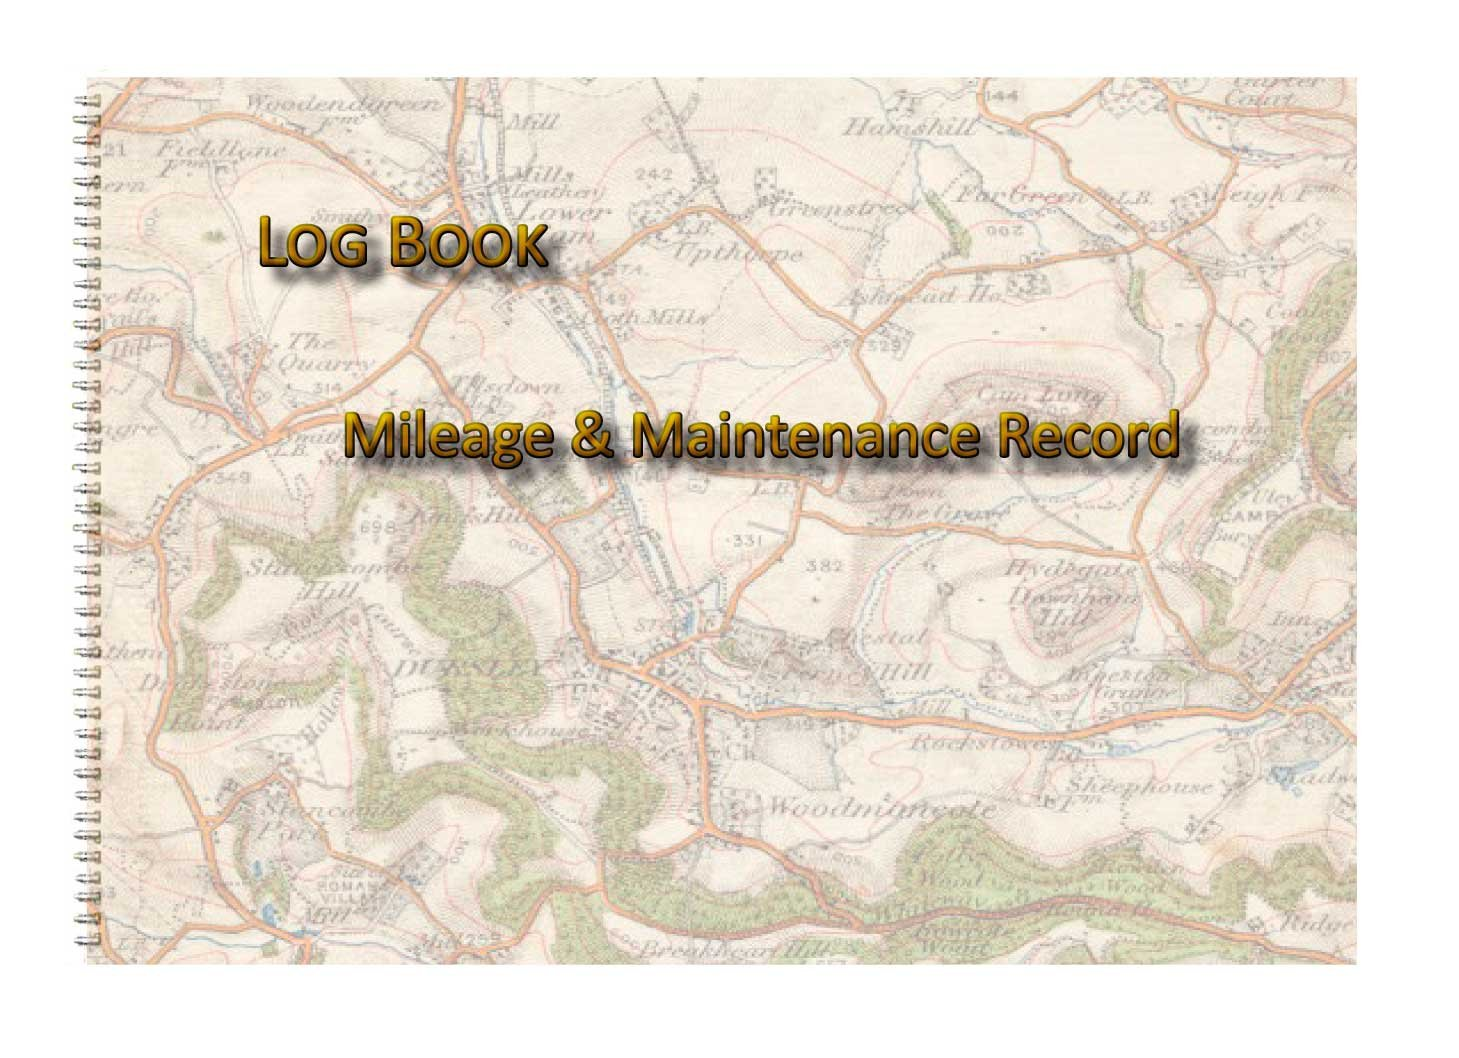 vehicle mileage log book map print effect cover a5 8 by 6